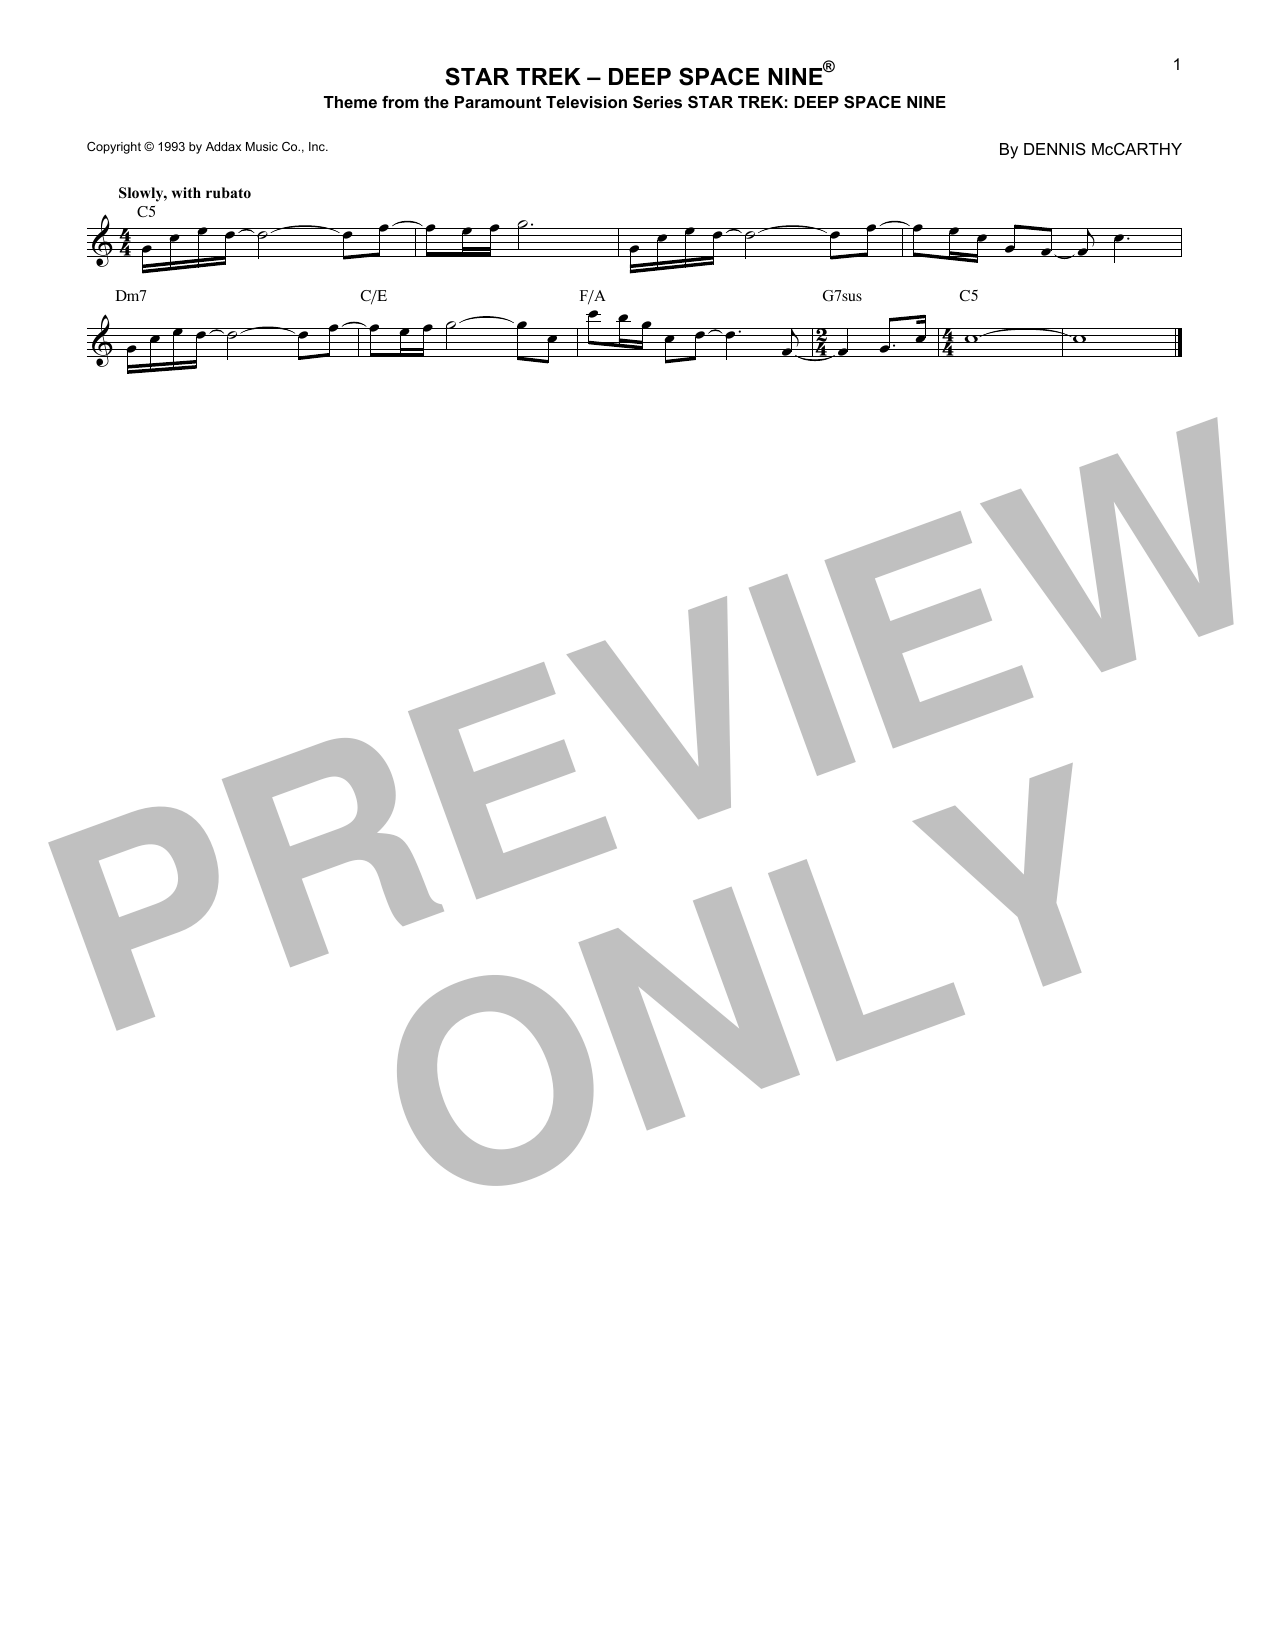 Dennis McCarthy Star Trek - Deep Space Nine sheet music notes and chords. Download Printable PDF.